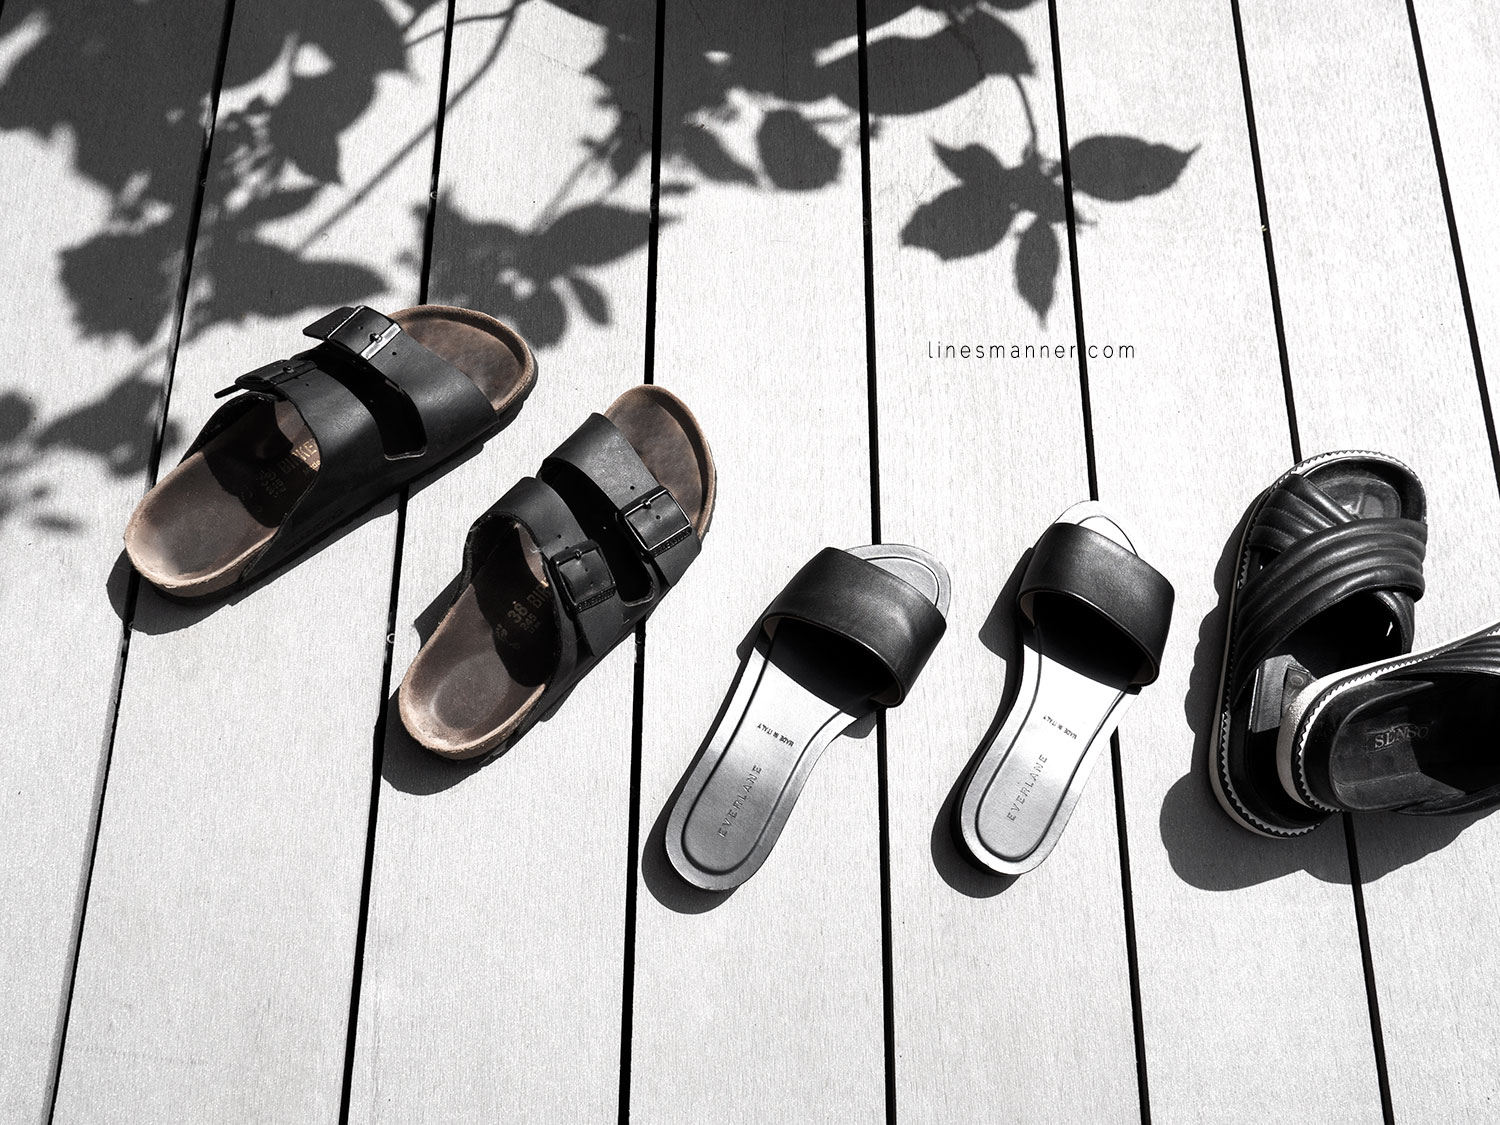 Lines-Manner-Summer-Shoes-Slides-Black-Leather-Minimal-Off_Duty-Senso_Everlane-Birkenstock-Essentials-Situation-4